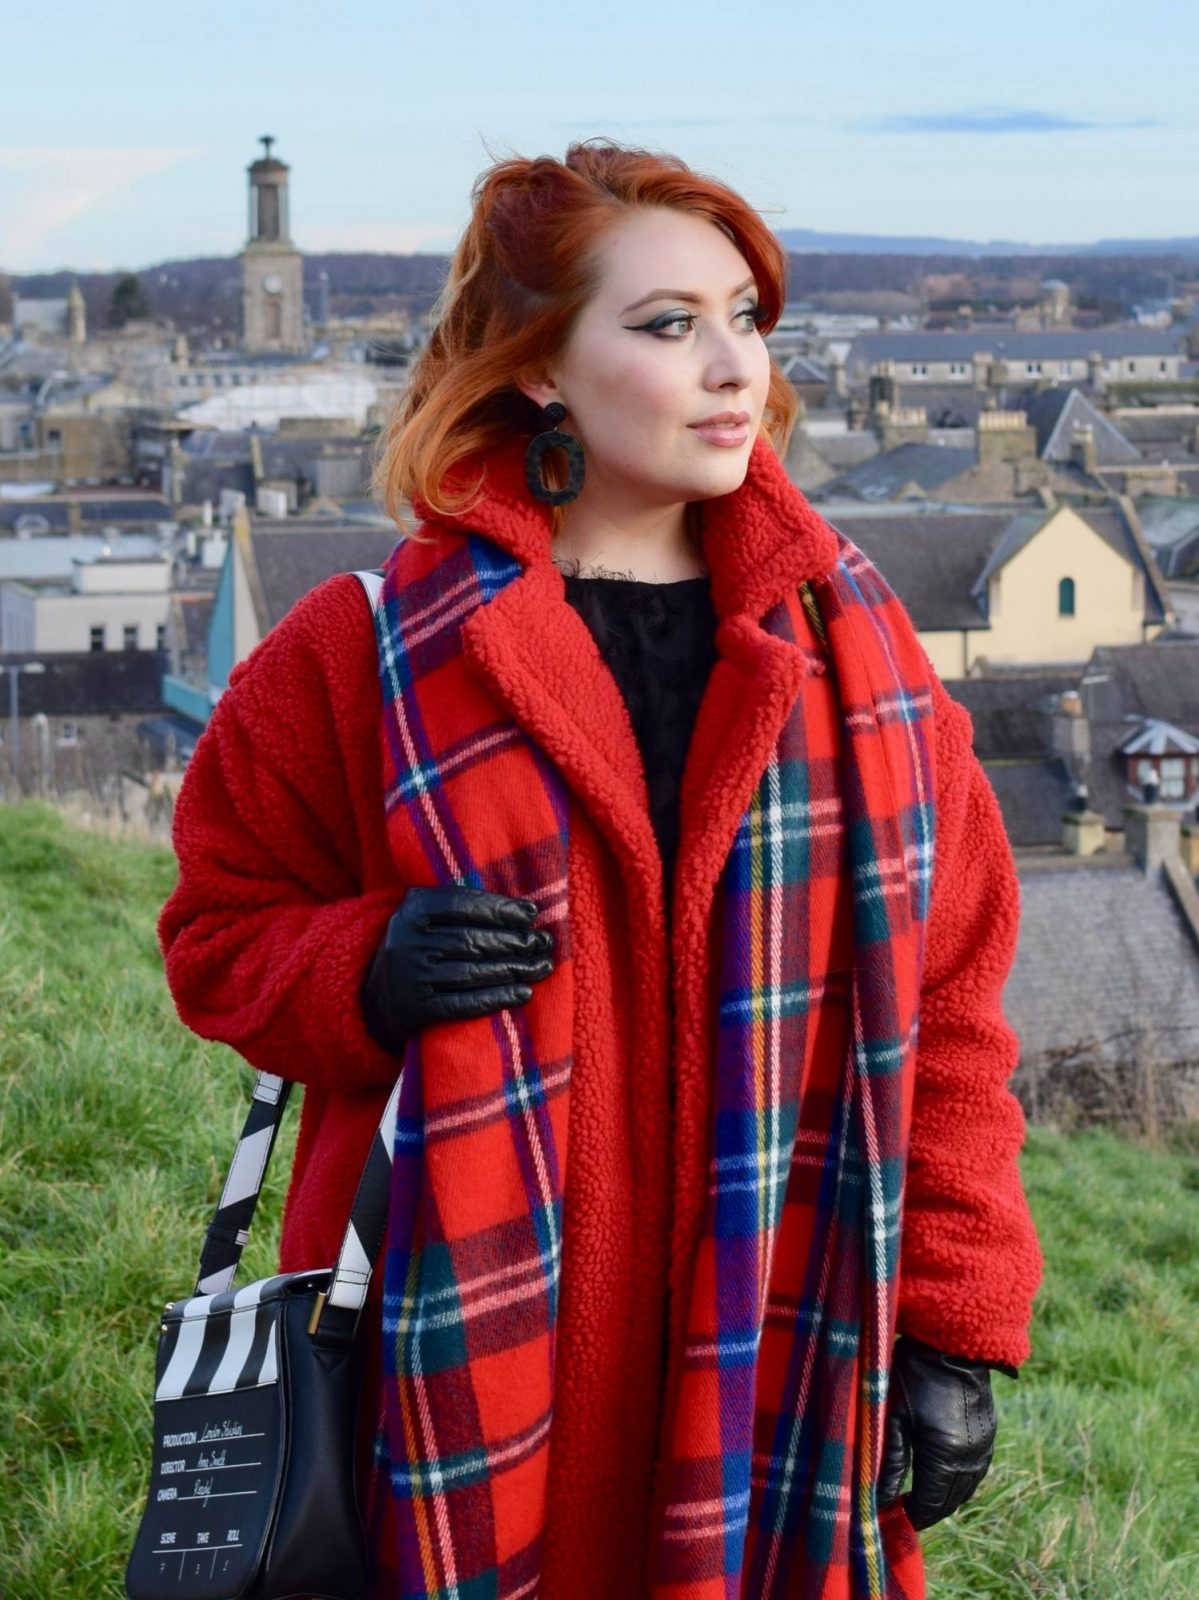 Twenty-Something City cosy winter fashion wearing red coat and tartan blanket scarf